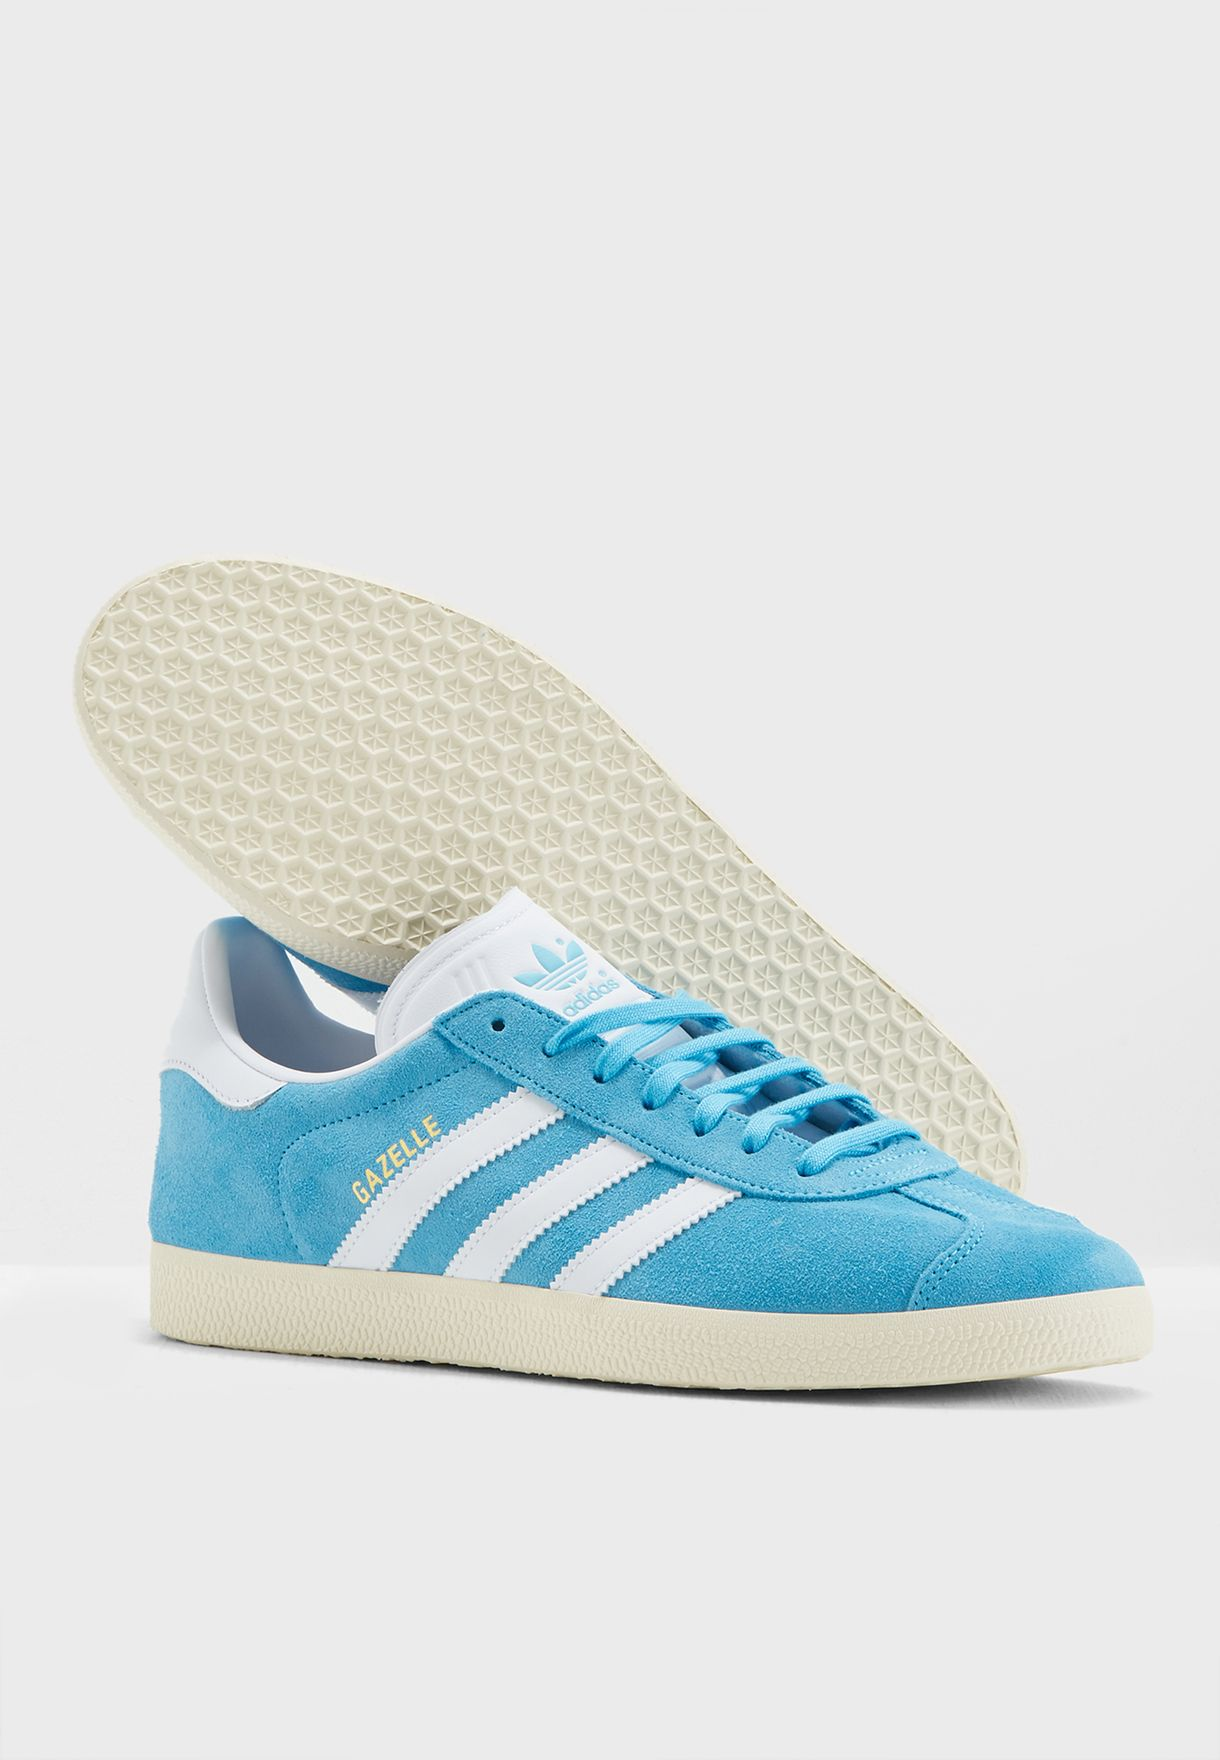 info for b711d d421c adidas Originals. Gazelle